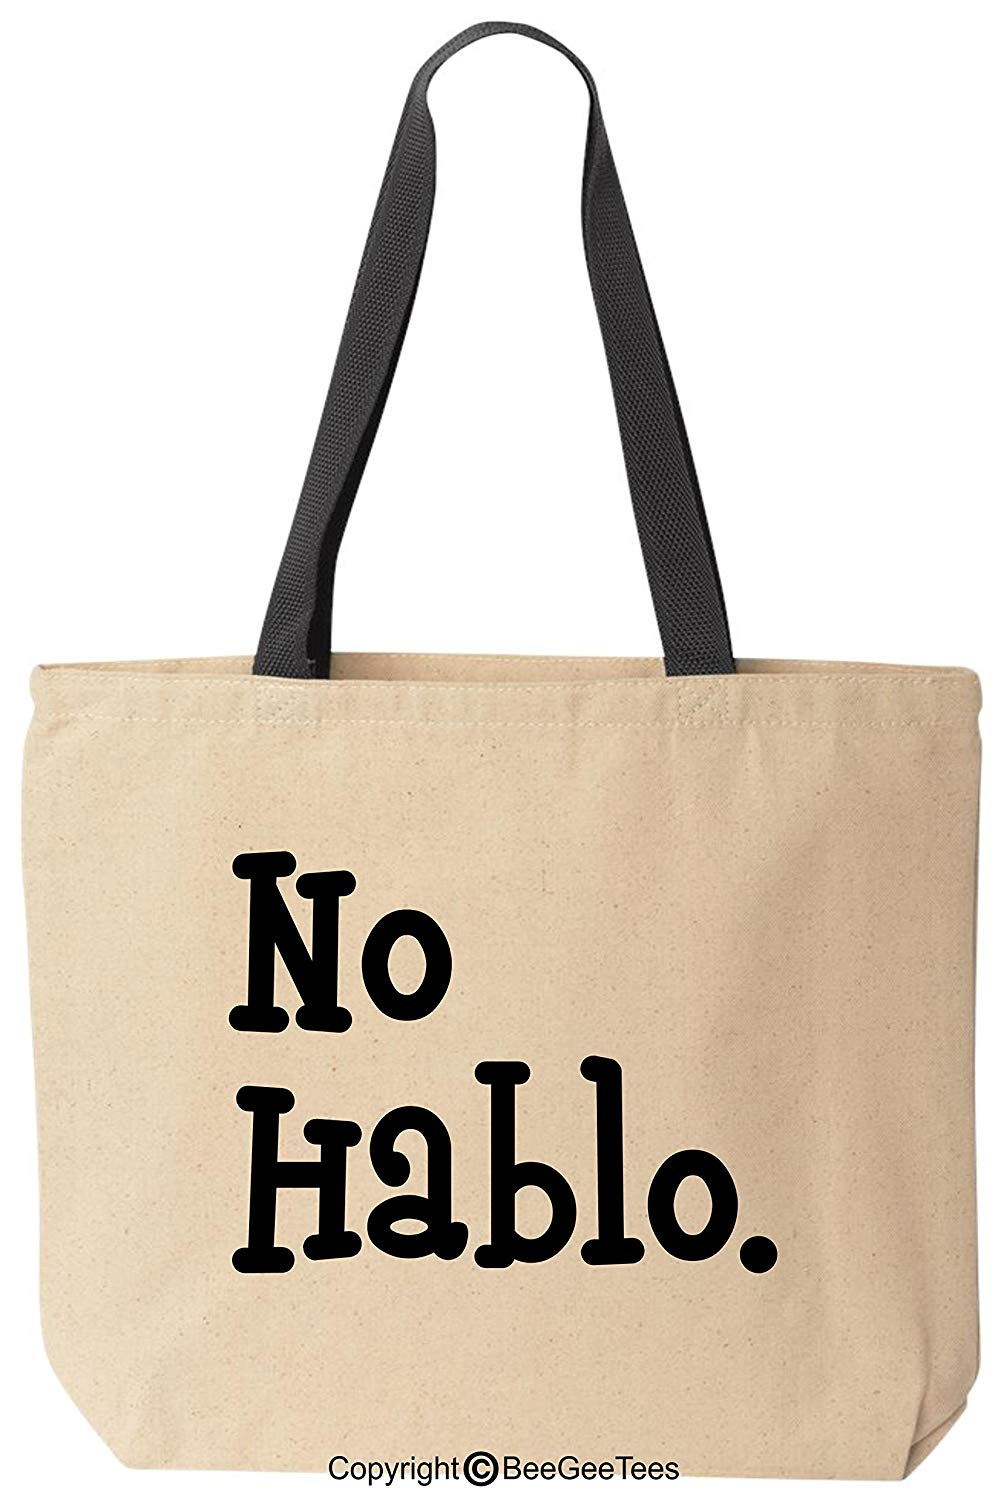 No Hablo Funny Canvas Hipster Shower Gift Tote I Don't Speak Bag by BeeGeeTees